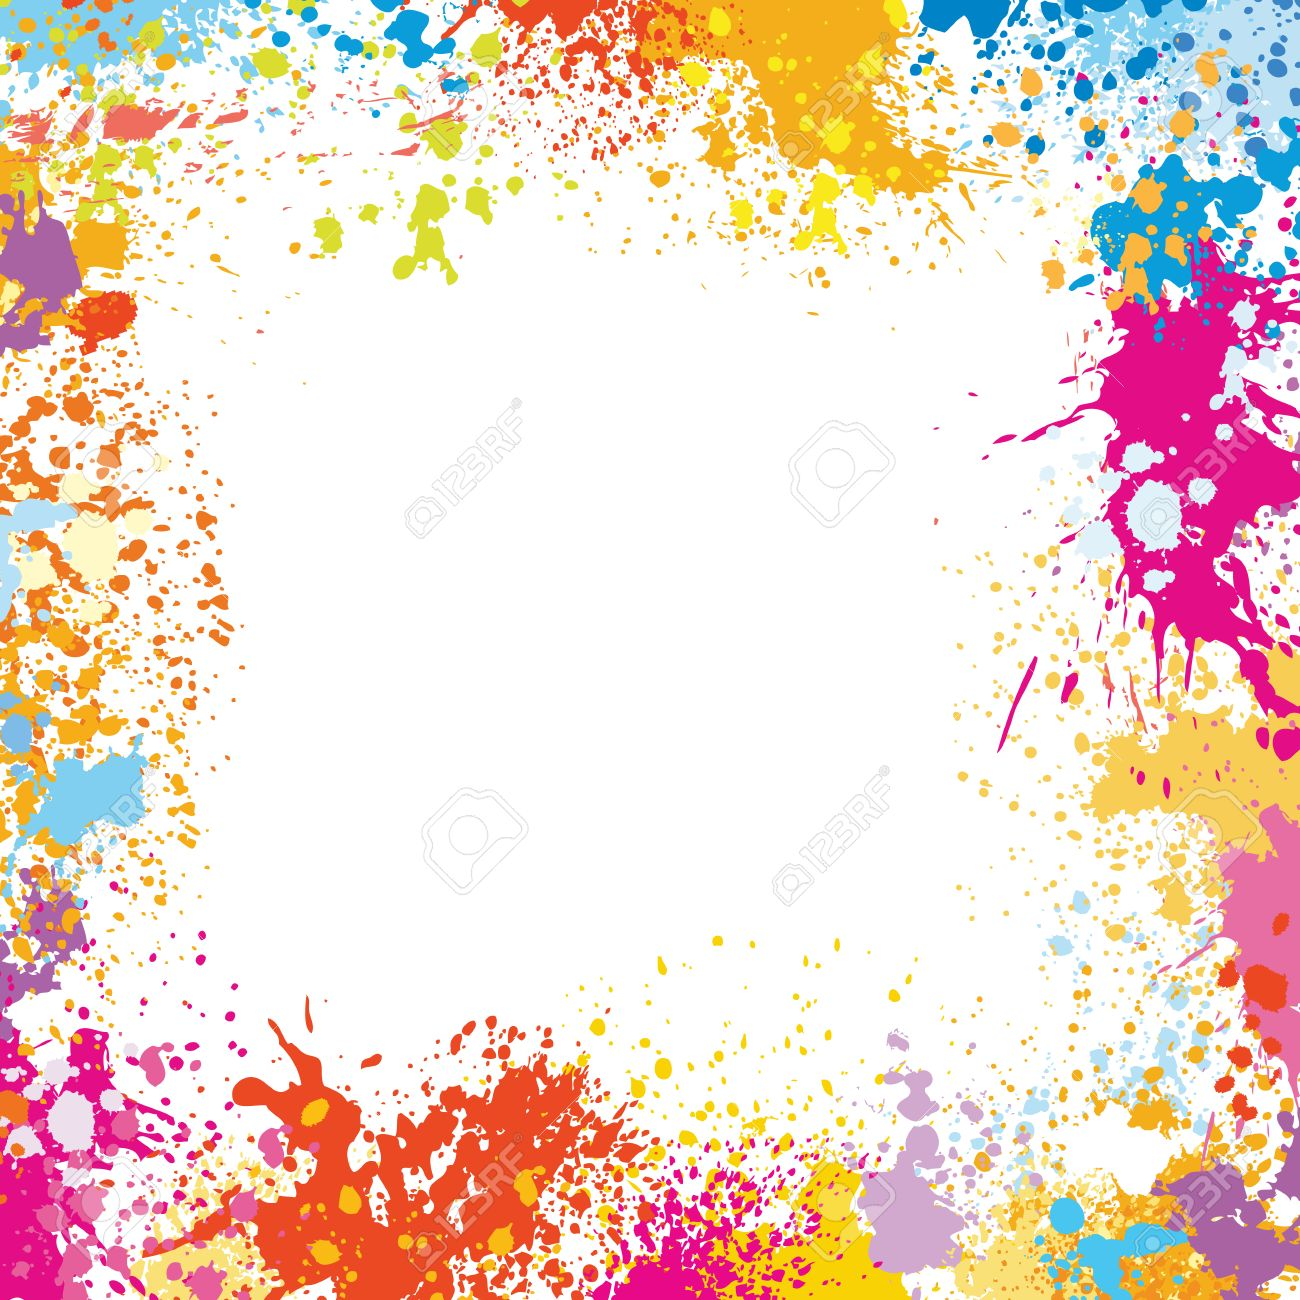 Frame Template Made Of Paint Stains Royalty Free Cliparts, Vectors ...